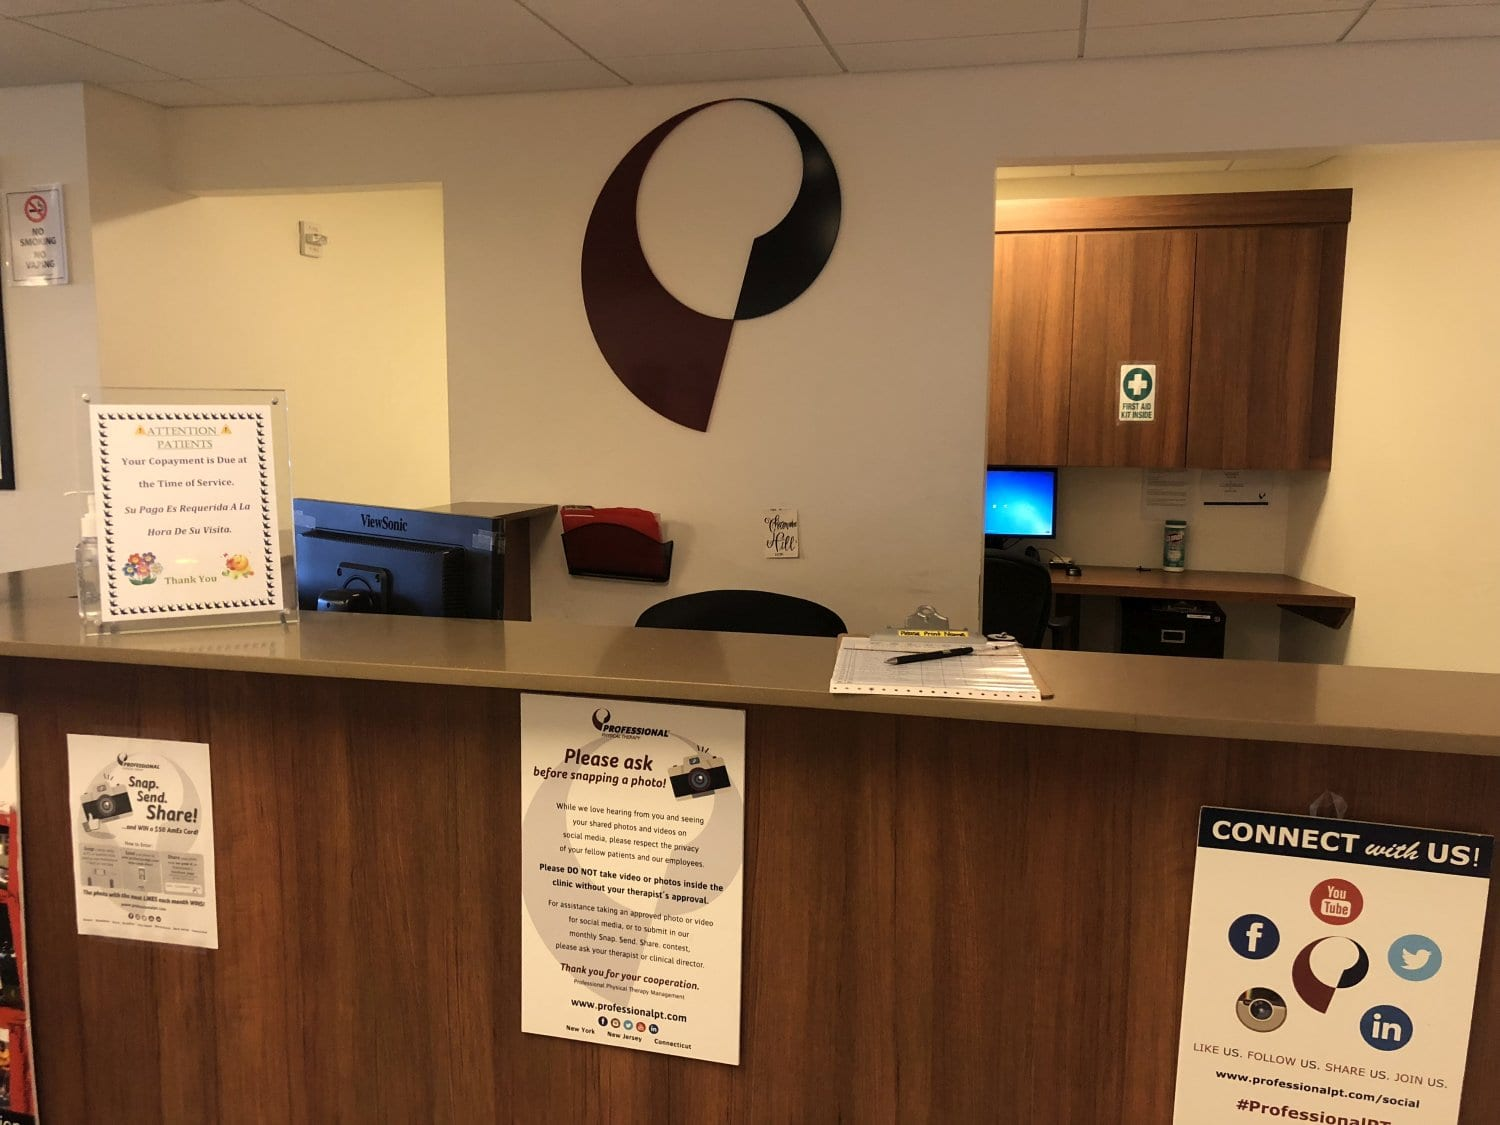 An image of the front desk at our physical therapy clinic in lower Manhattan, New York City at Brookfield.